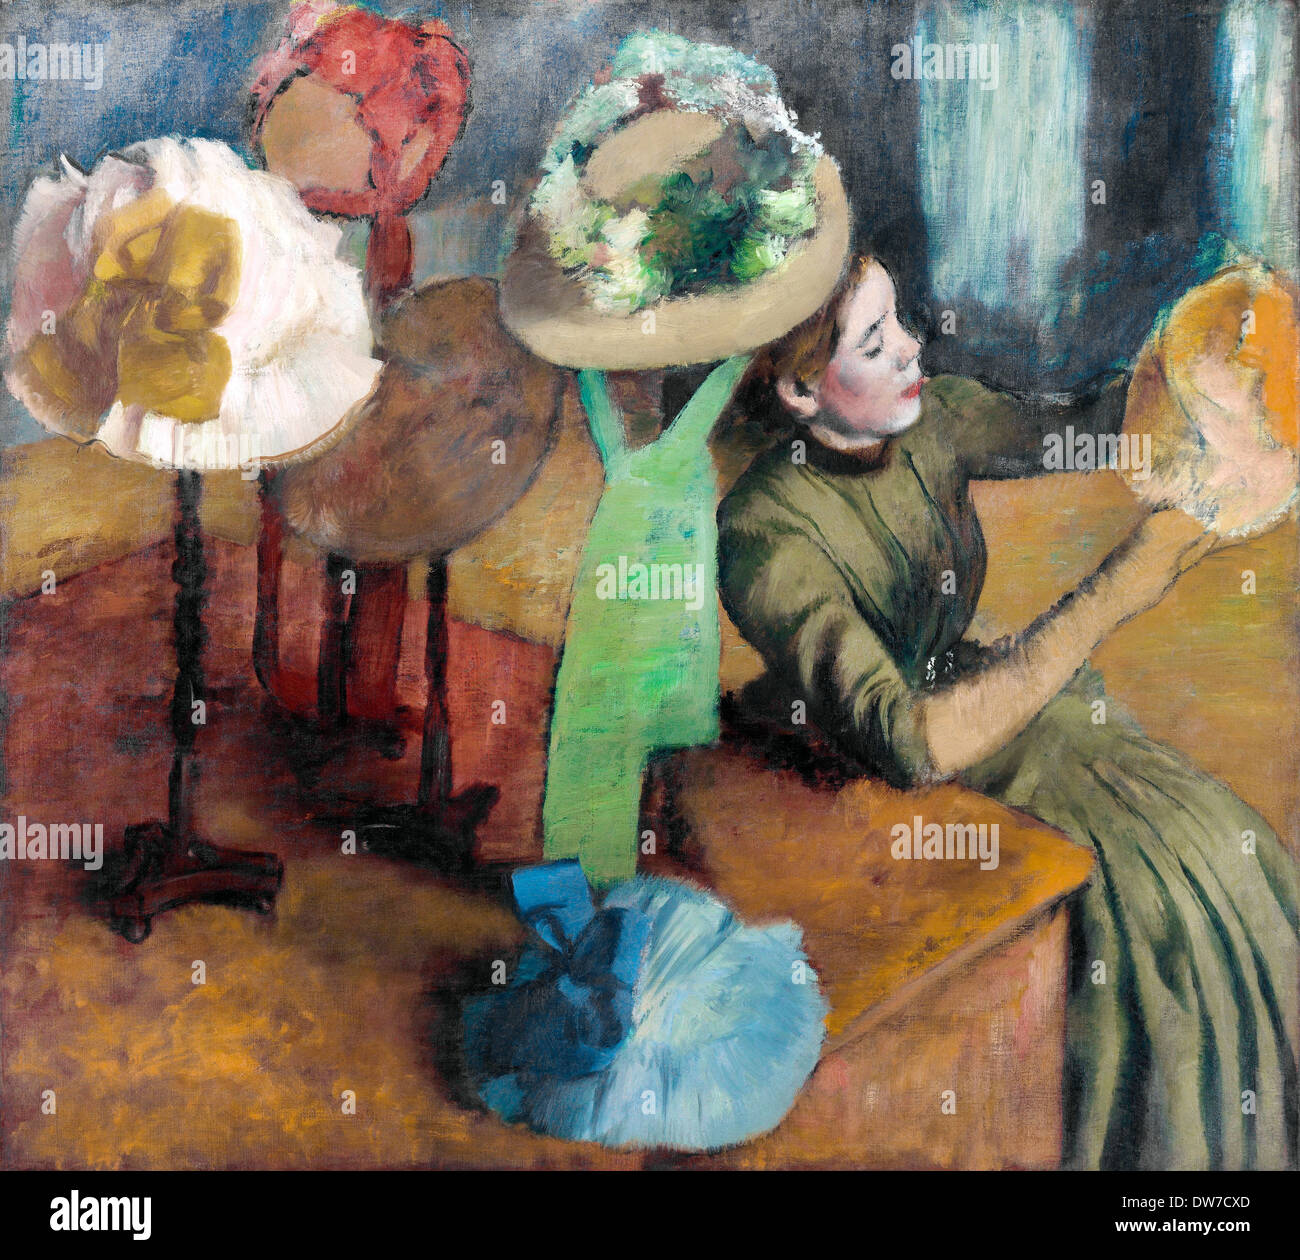 Edgar Degas, The Millinery Shop 1879-1886 Oil on canvas. Art Institute of Chicago, Chicago, USA. - Stock Image